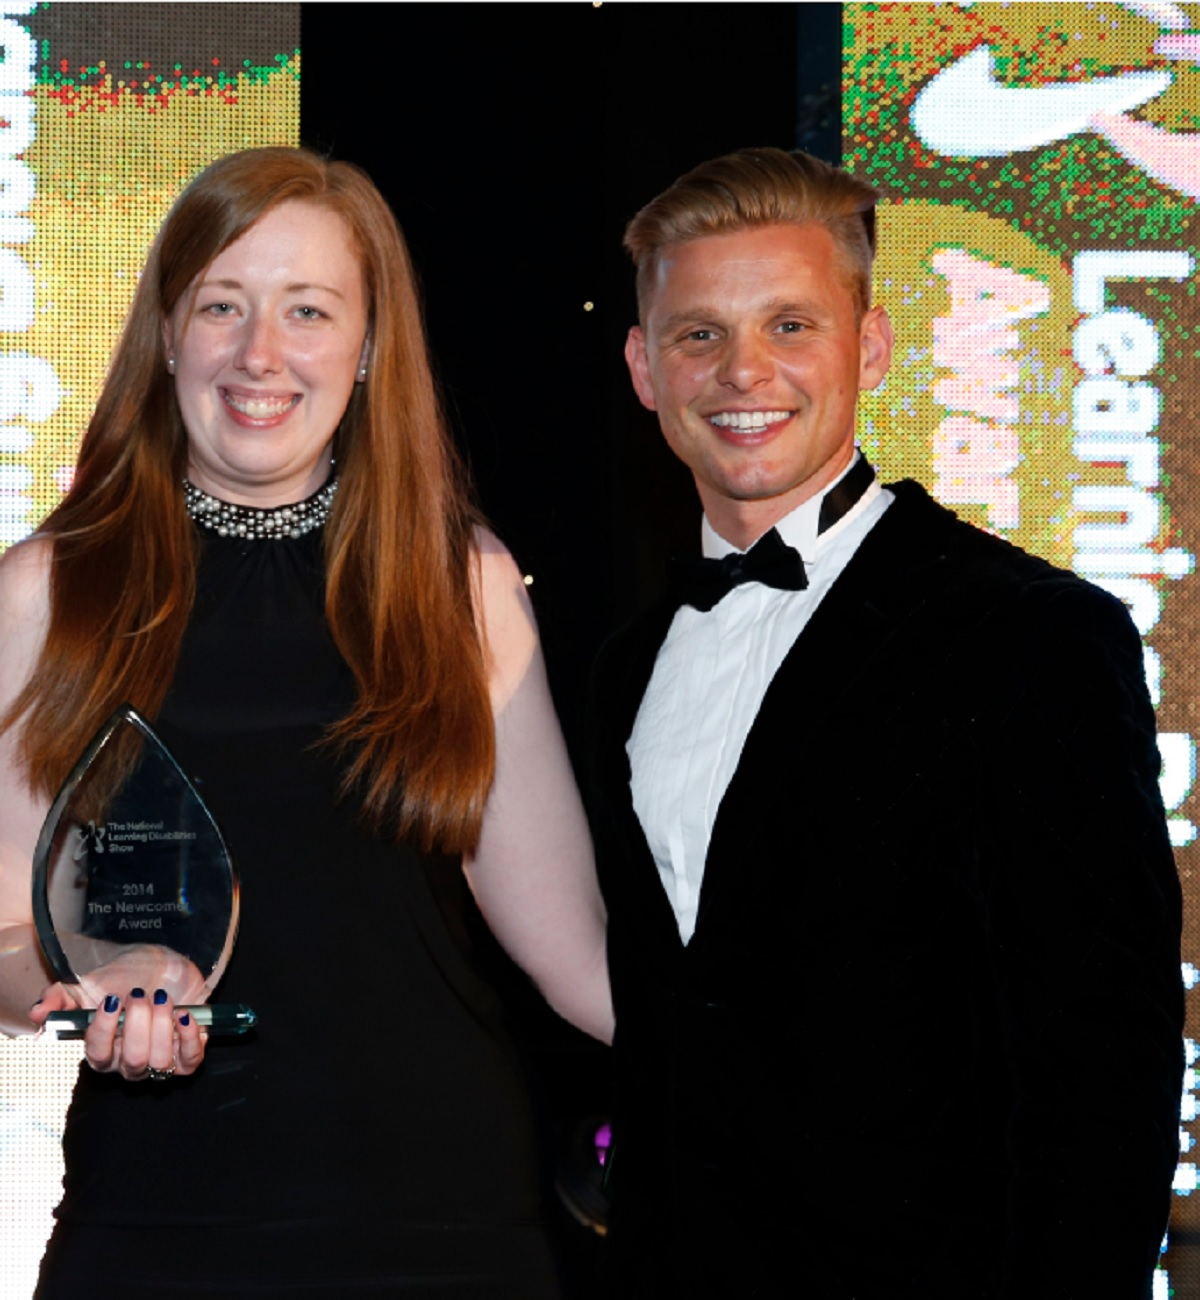 AWARD: Care home worker Holly Turner has received a National Learning Disabilities Awards. Pictured with television presenter Jeff Brazier, who hosted the evening. SP